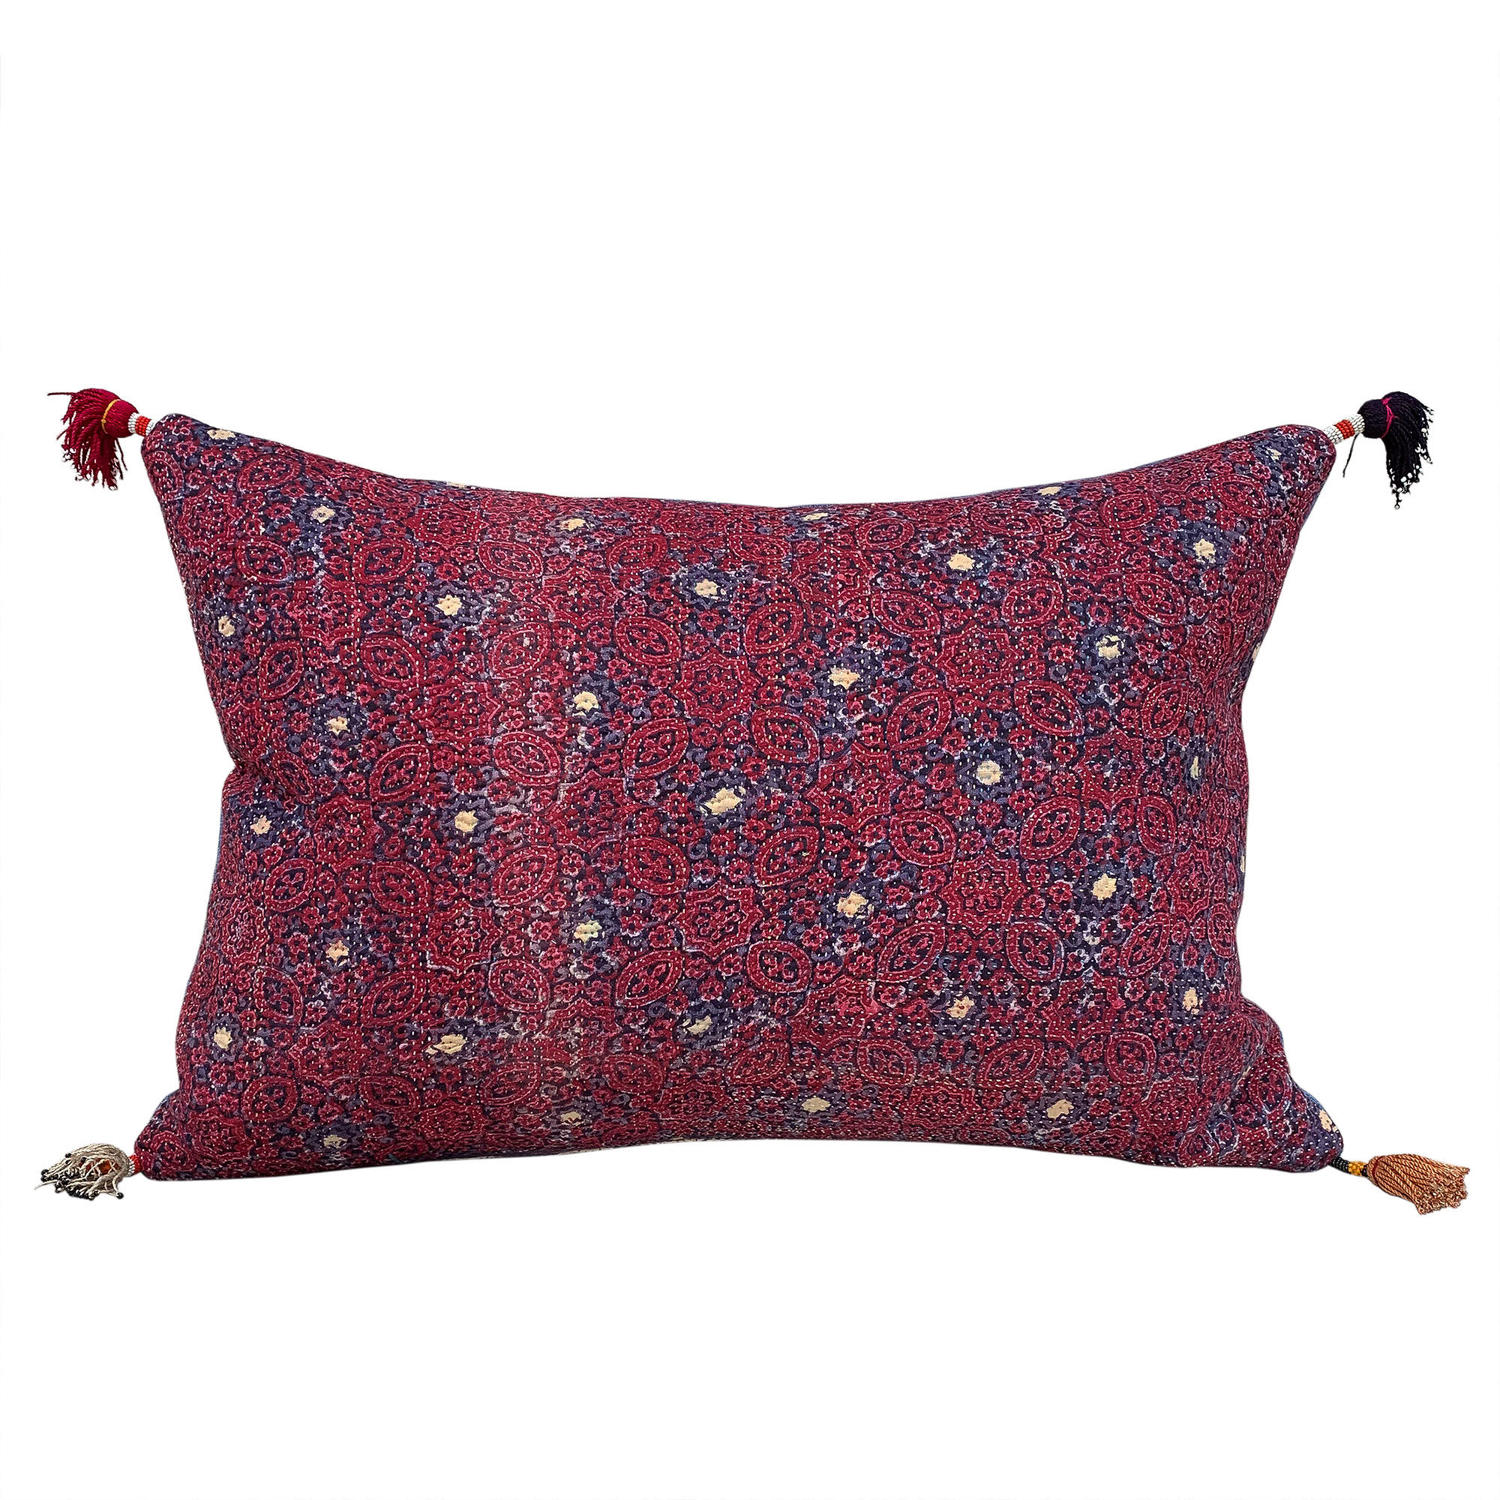 Sami Quilt Cushion with Baluchi Tassels